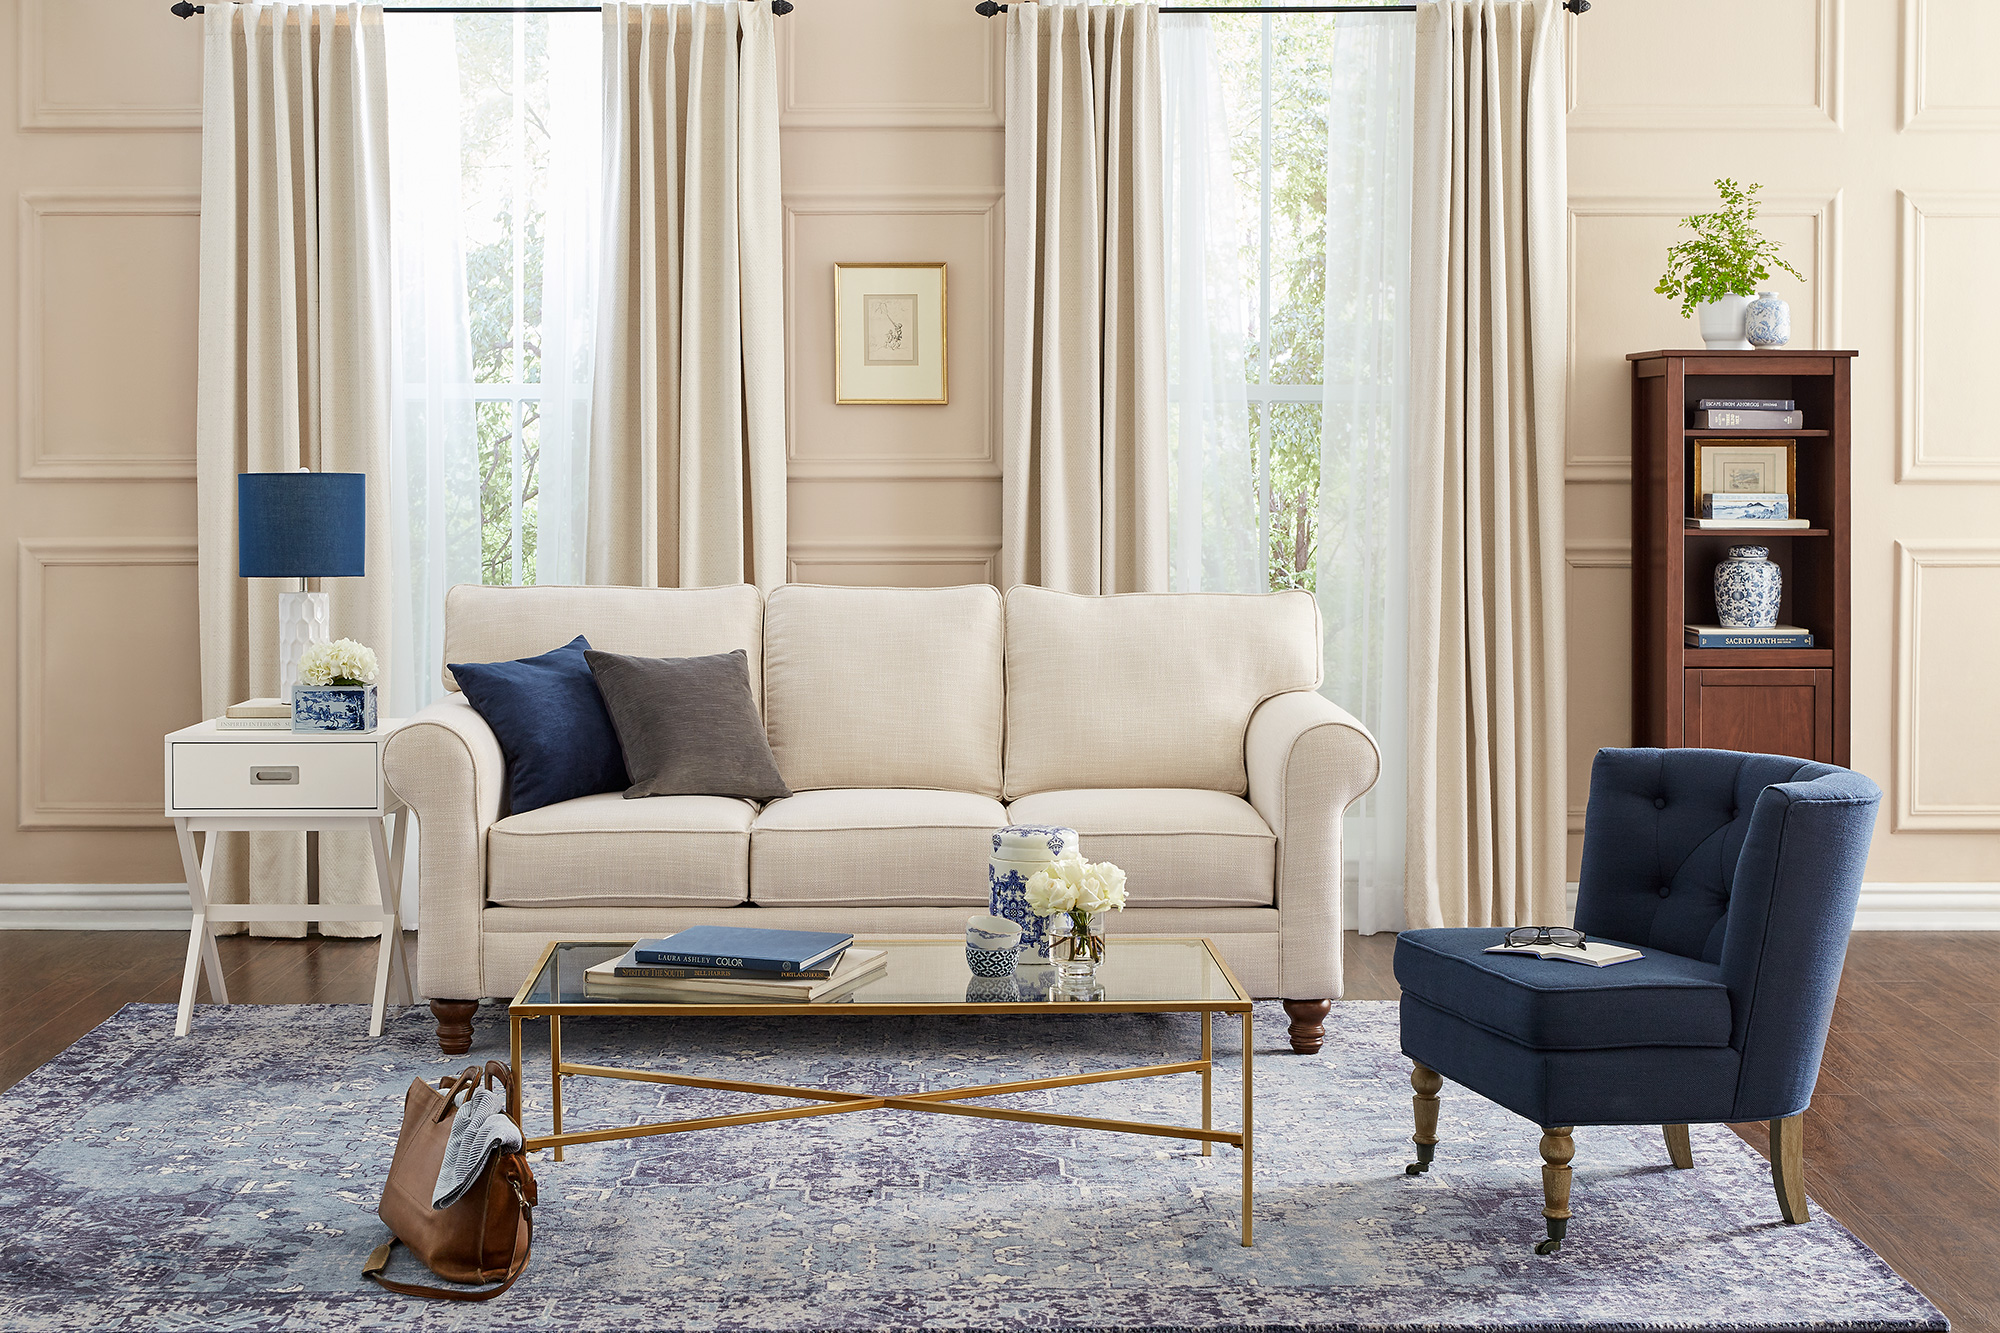 new alert avington coffee table black threshold ravenna home living windham accent launches its own furnishings collection take peek the affordable items room floor lamps small